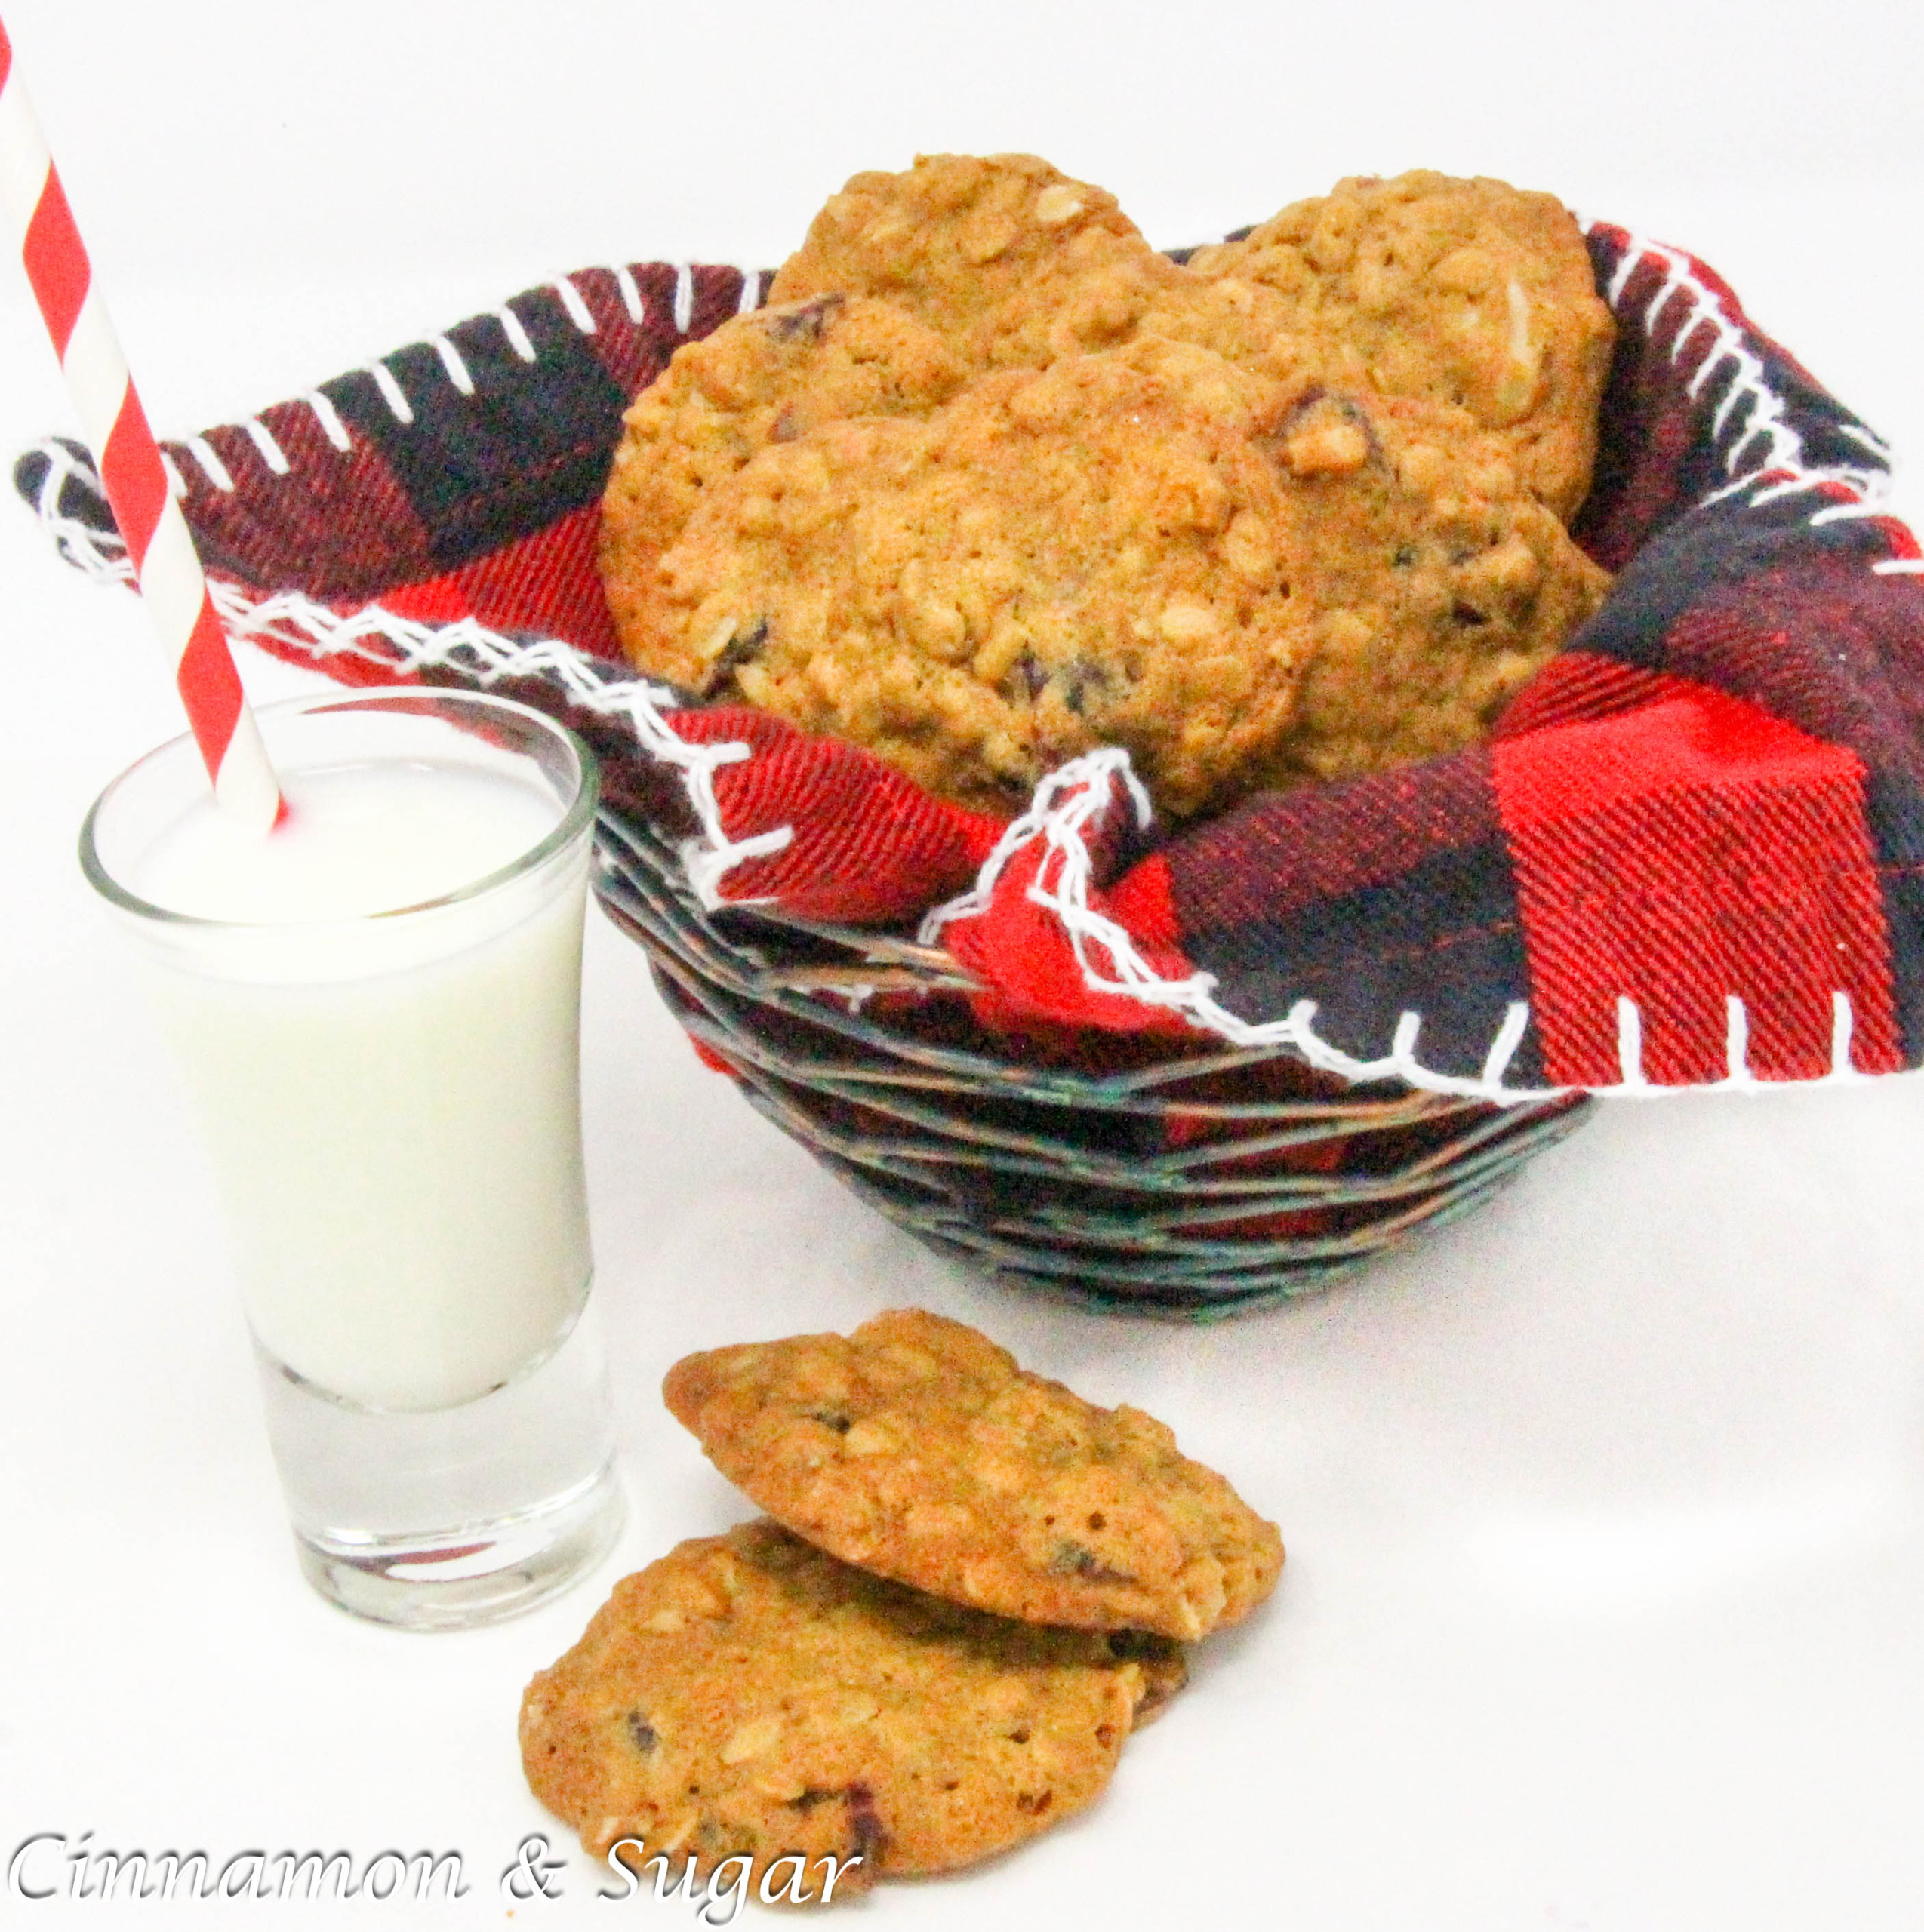 With the addition of molasses and cranberries to give the cookies an added depth of flavor and texture, Molasses Oatmeal Cookies are a yummy treat! Recipe shared with permission granted by Vicki Delany, author of A CURIOUS INCIDENT.